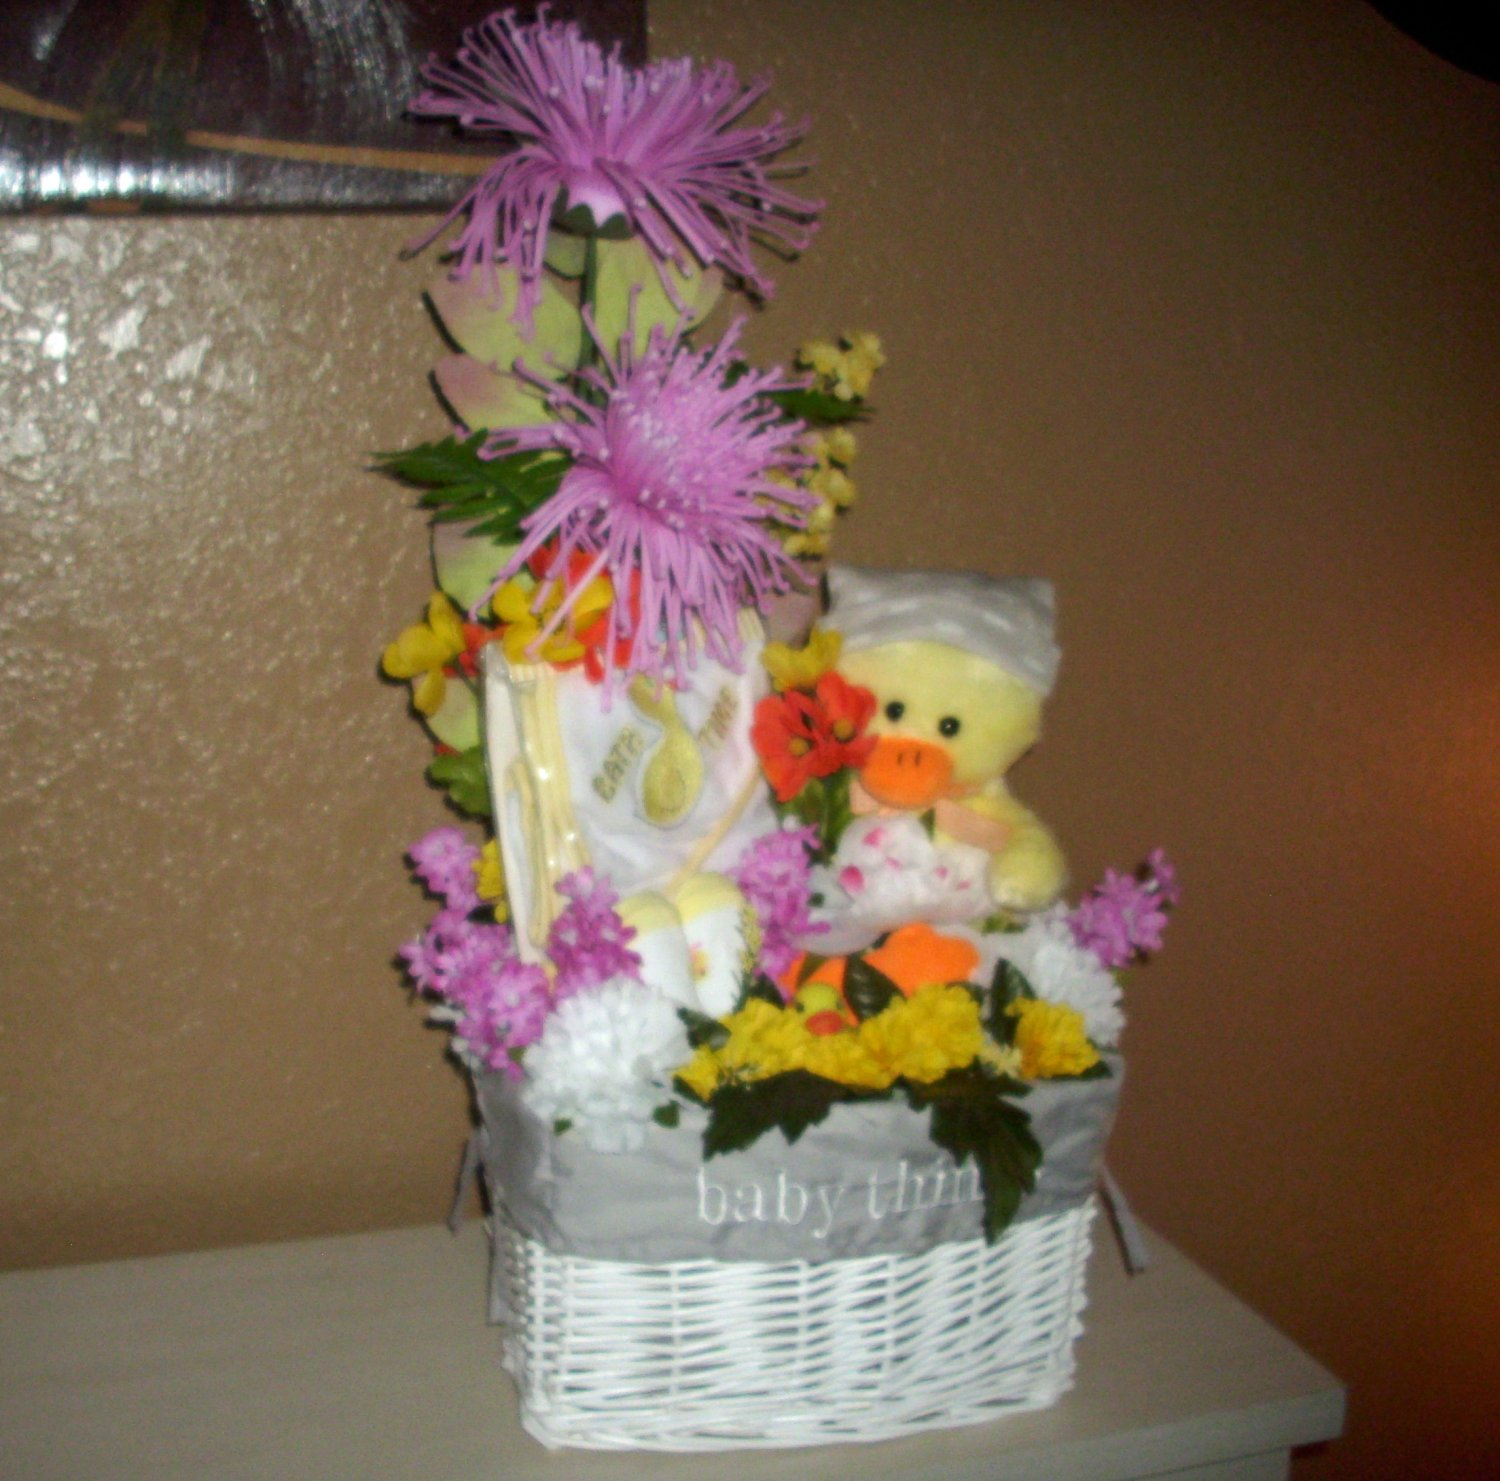 Baby Shower Gift Basket Full of Flowers & Duck Baby Items, Perfect Centerpiece